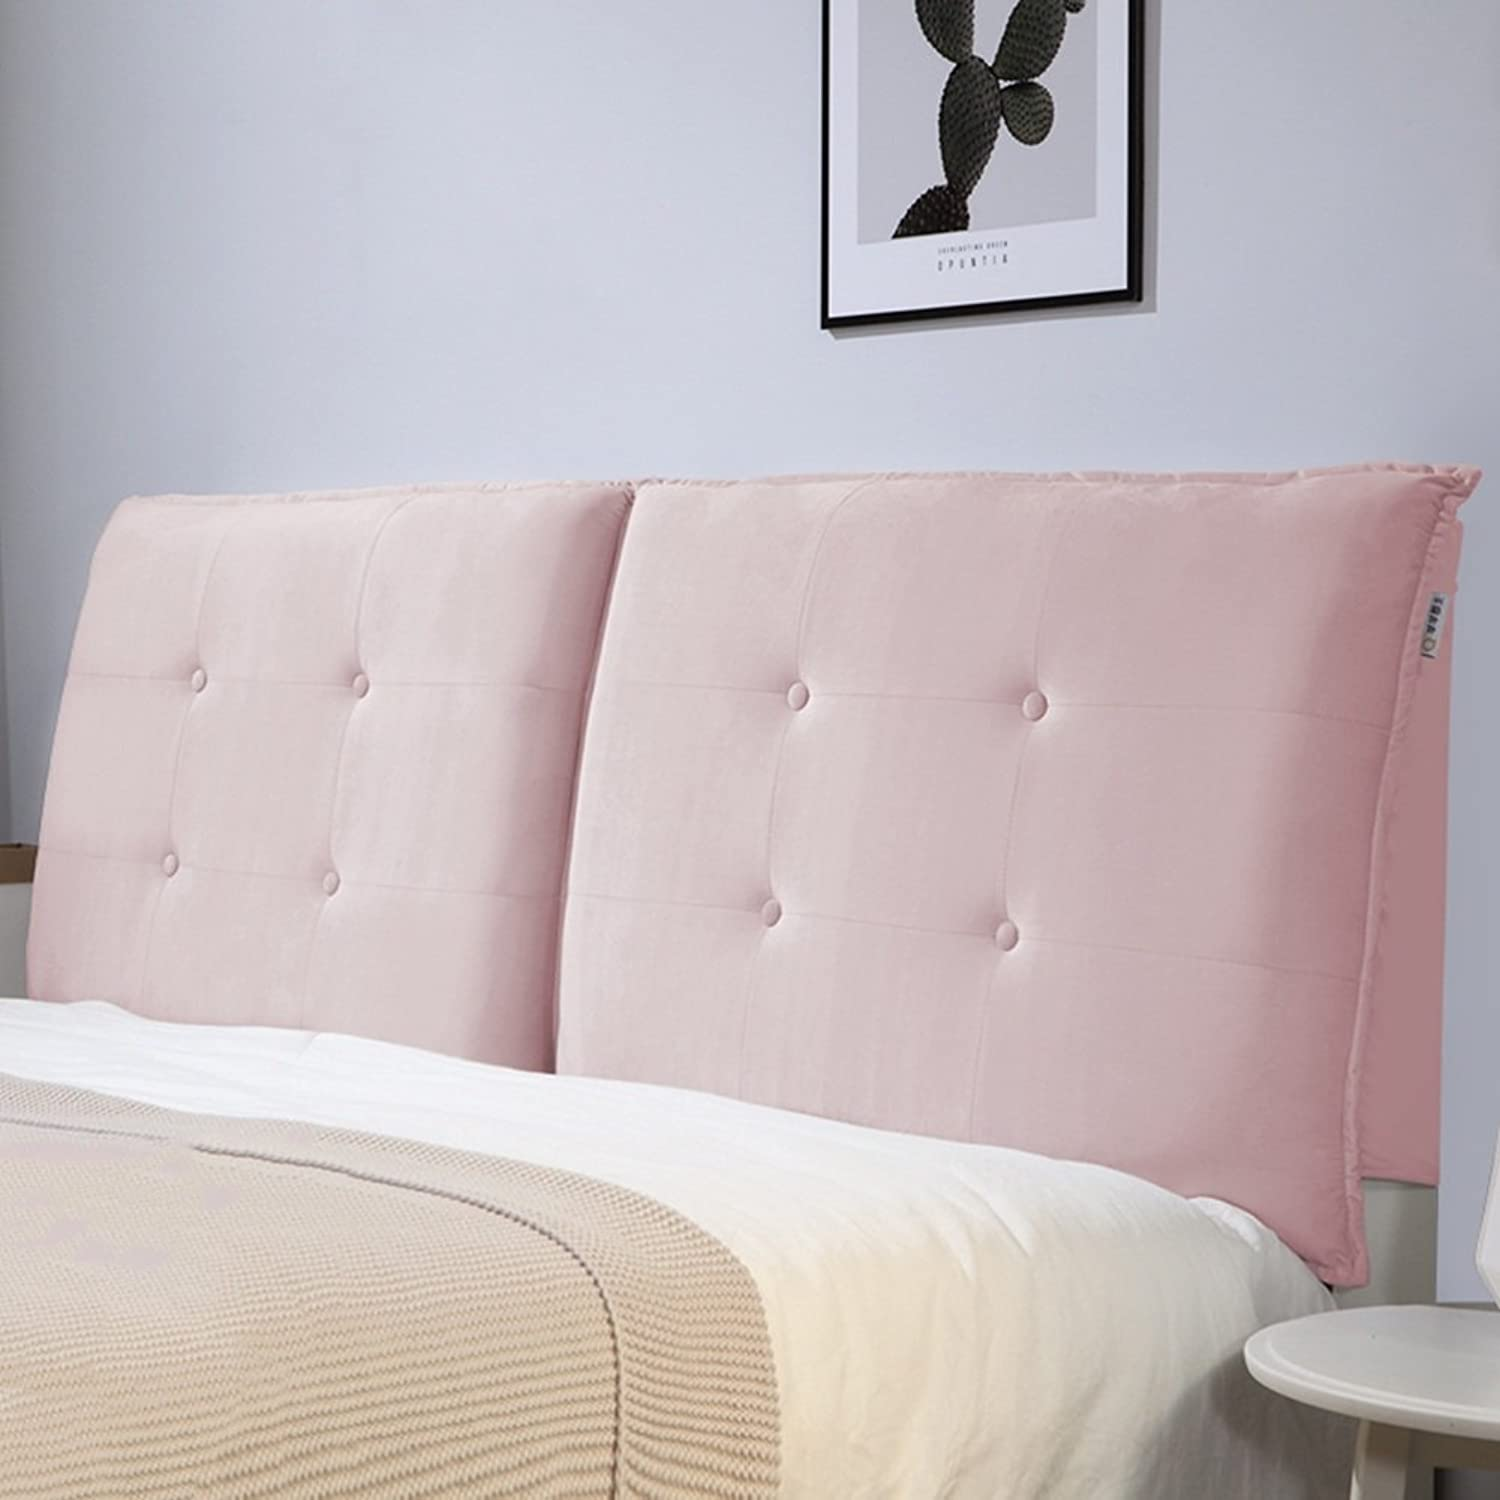 WENZHE Upholstered Fabric Headboard Bedside Cushion Pads Cover Bed Wedges Backrest Waist Pad Soft Case Bedroom Large Back Sofa Pillow Multifunction Home Supplies Washable Handmade Simple Fashion, There Is Headboard   No Headboard, 2 colors, 5 Sizes ( Colo